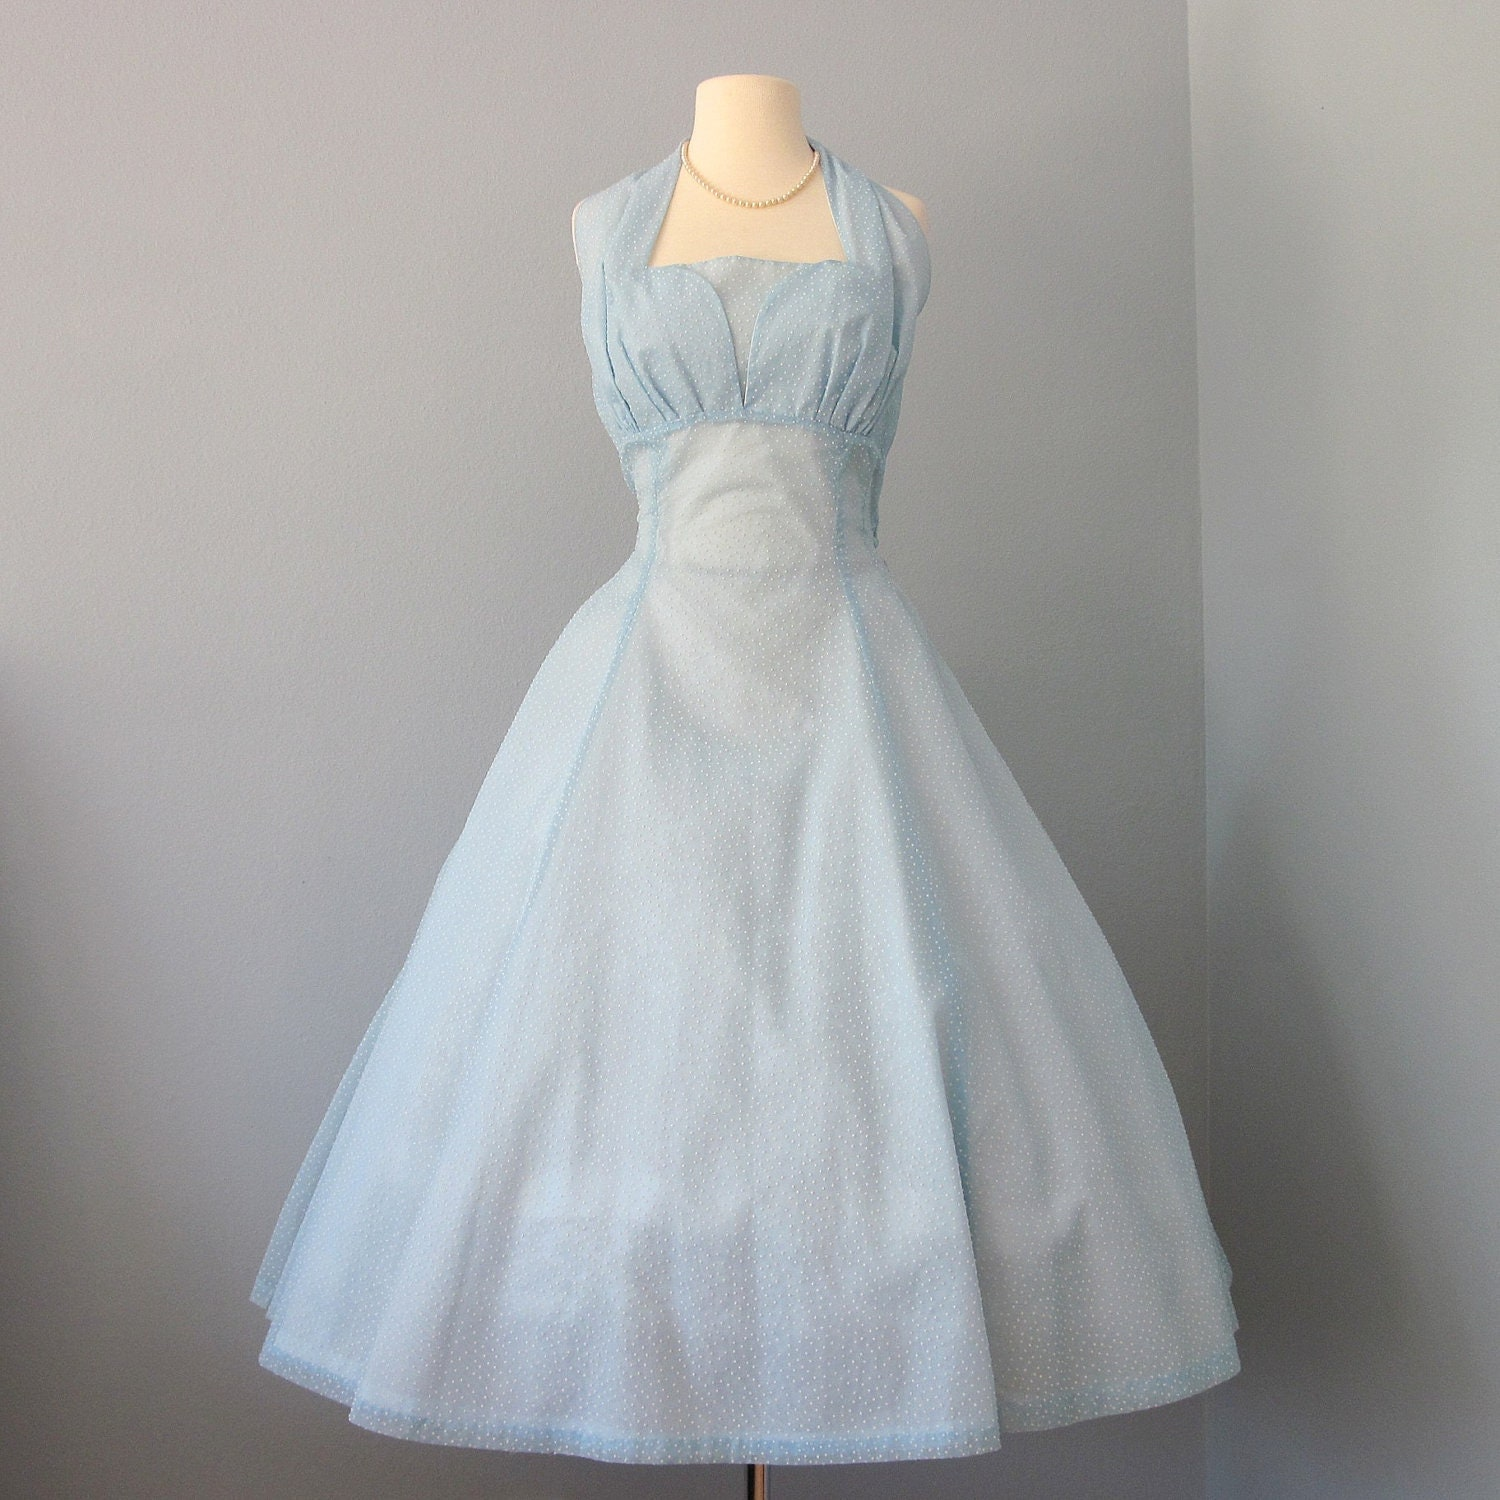 Vintage 1950s Pale Blue Dotted Swiss Organza Halter by deomas